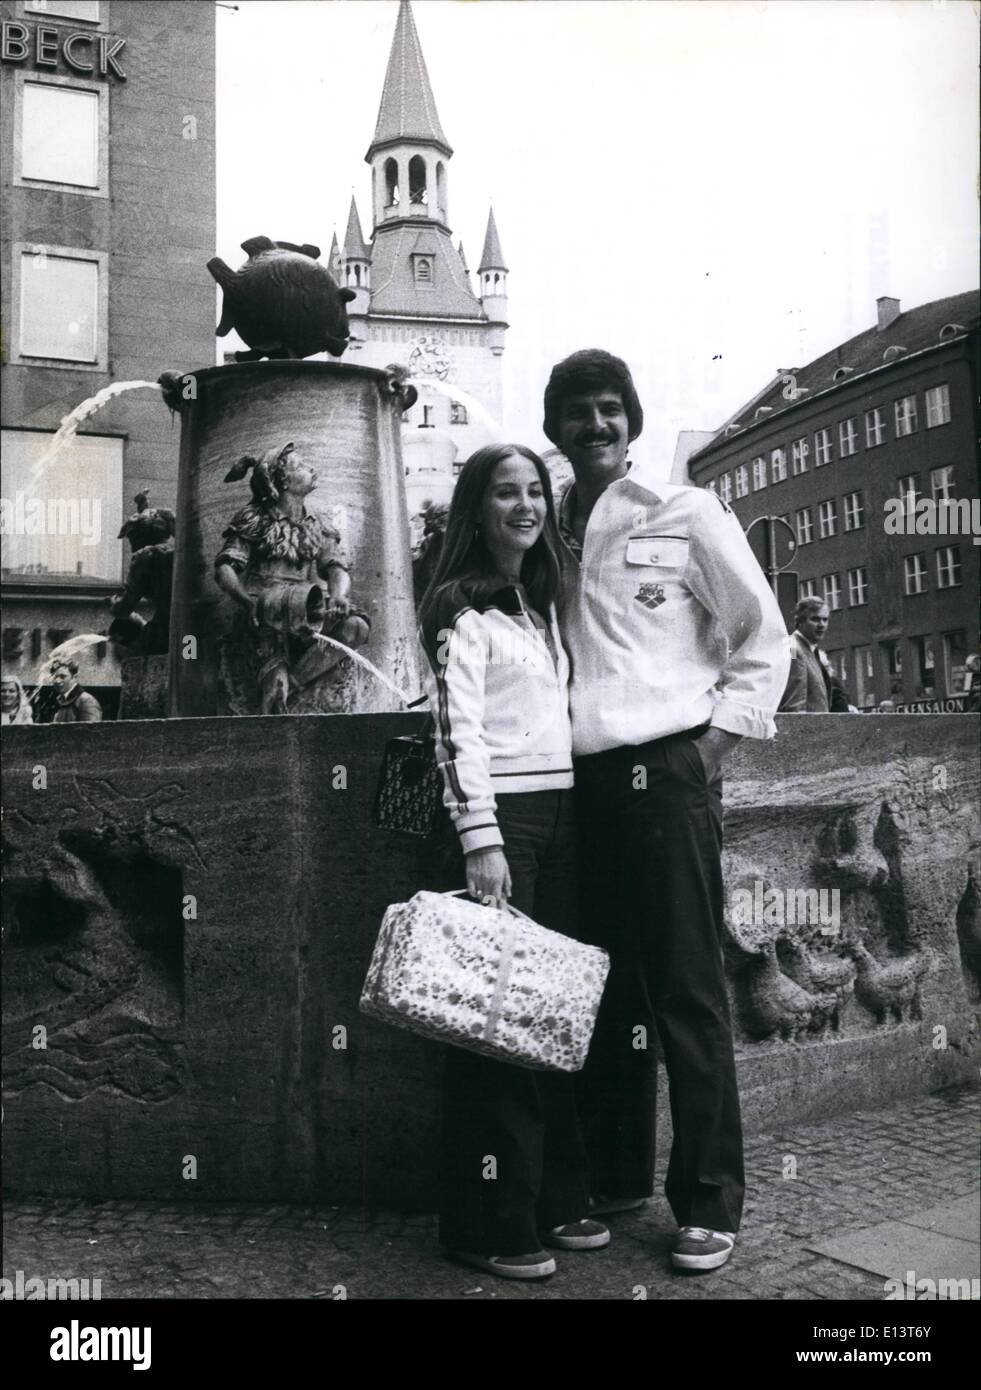 Mar. 27, 2012 - Mark Spitz In The Federal Republic Of Germany 7 gold medals... Mark Spitz got in Munich 1972 at Stock Photo